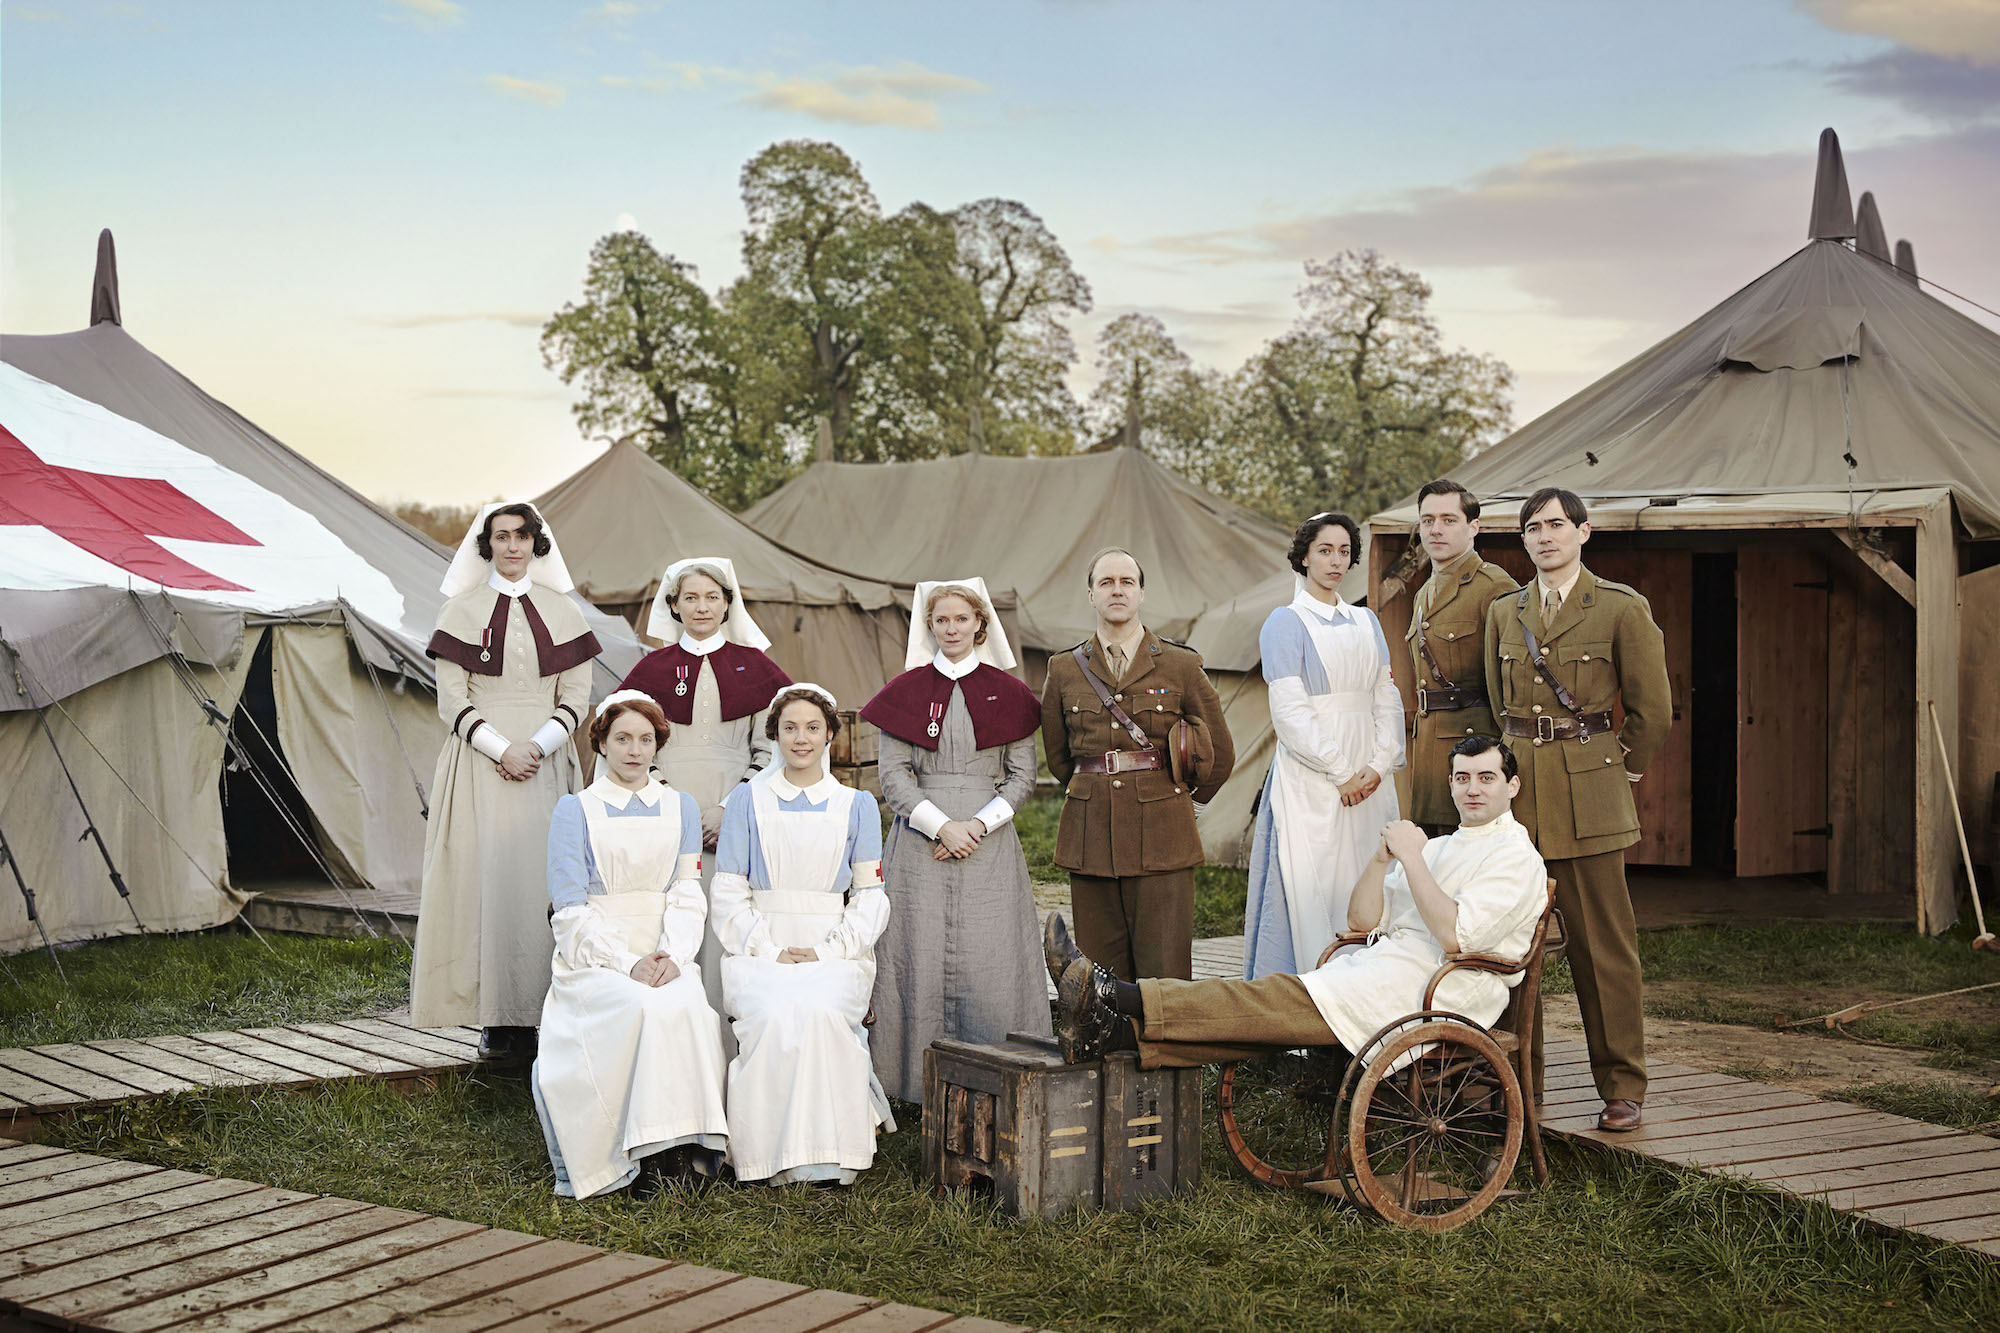 Crimsonfield3